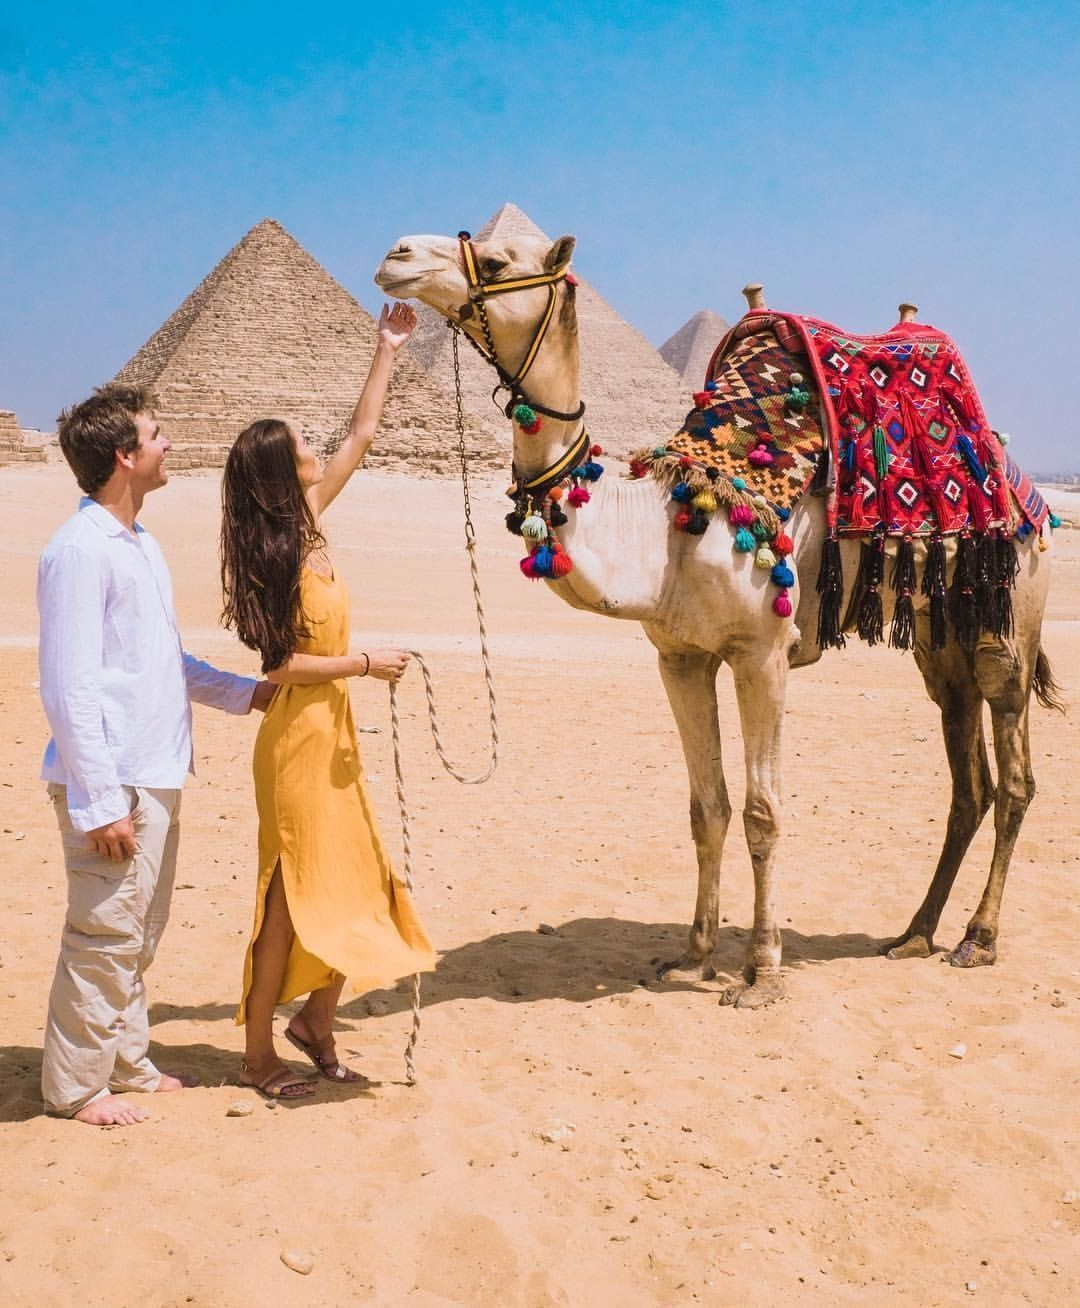 Egypt Tours 2019 in 2020 Places in egypt, Egypt travel